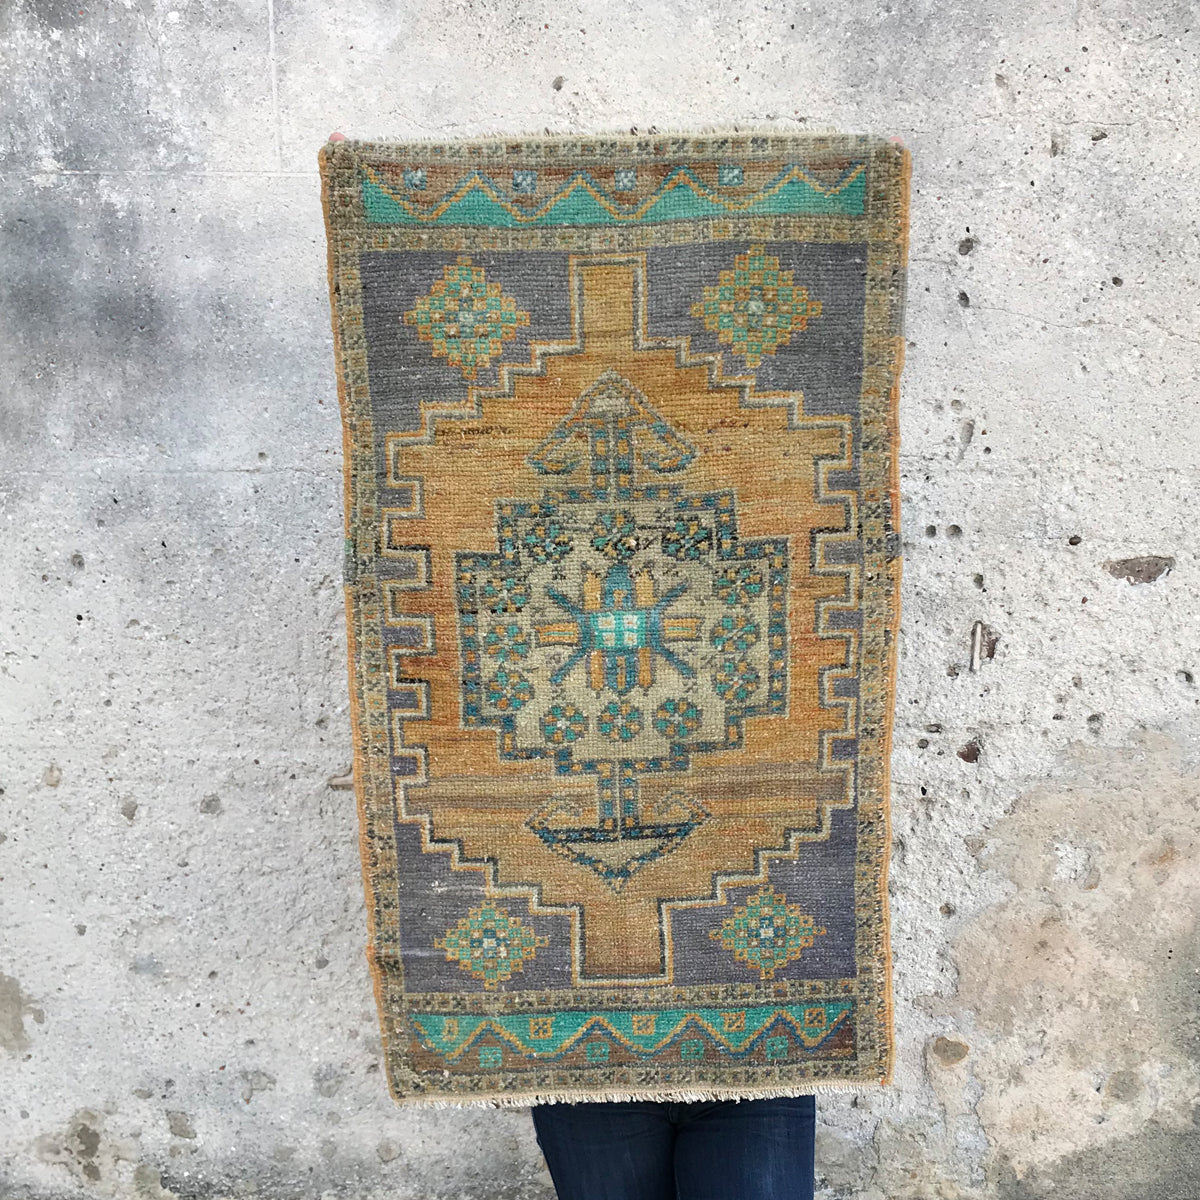 This small handwoven vintage Turkish rug has a beautiful teals, yellow, and purples. Great for entryways, bathrooms, kitchens and layering. 20x34 inches.